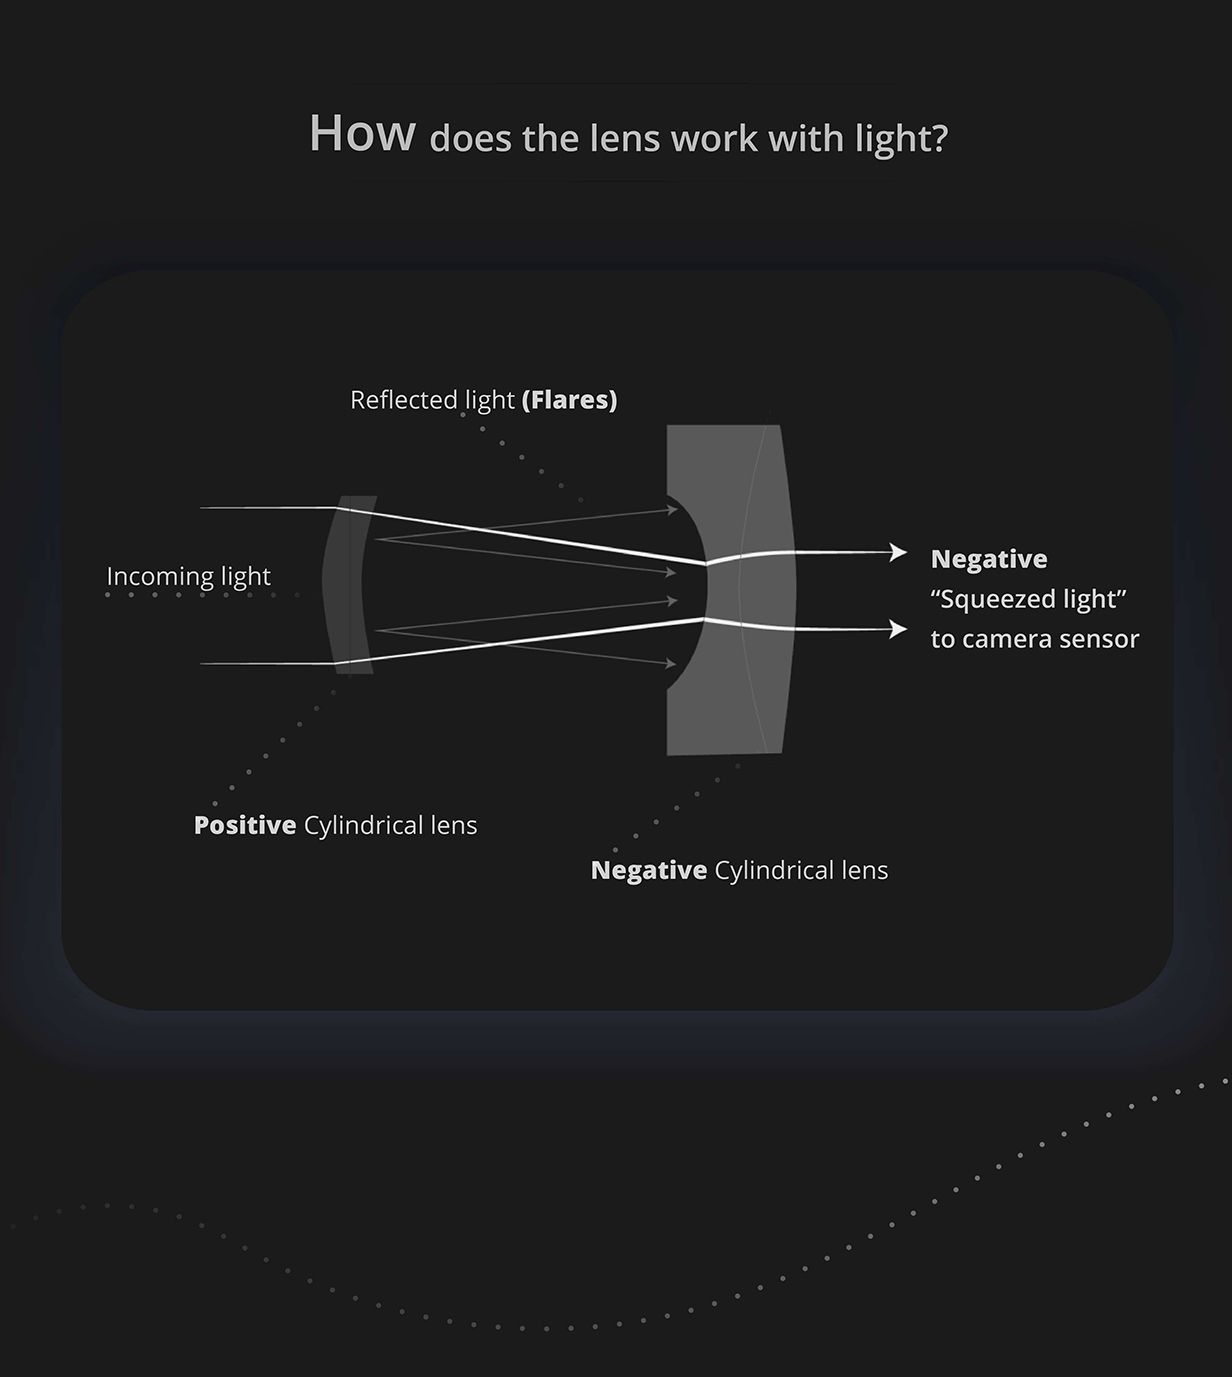 How does the anamorphic lens work with light?